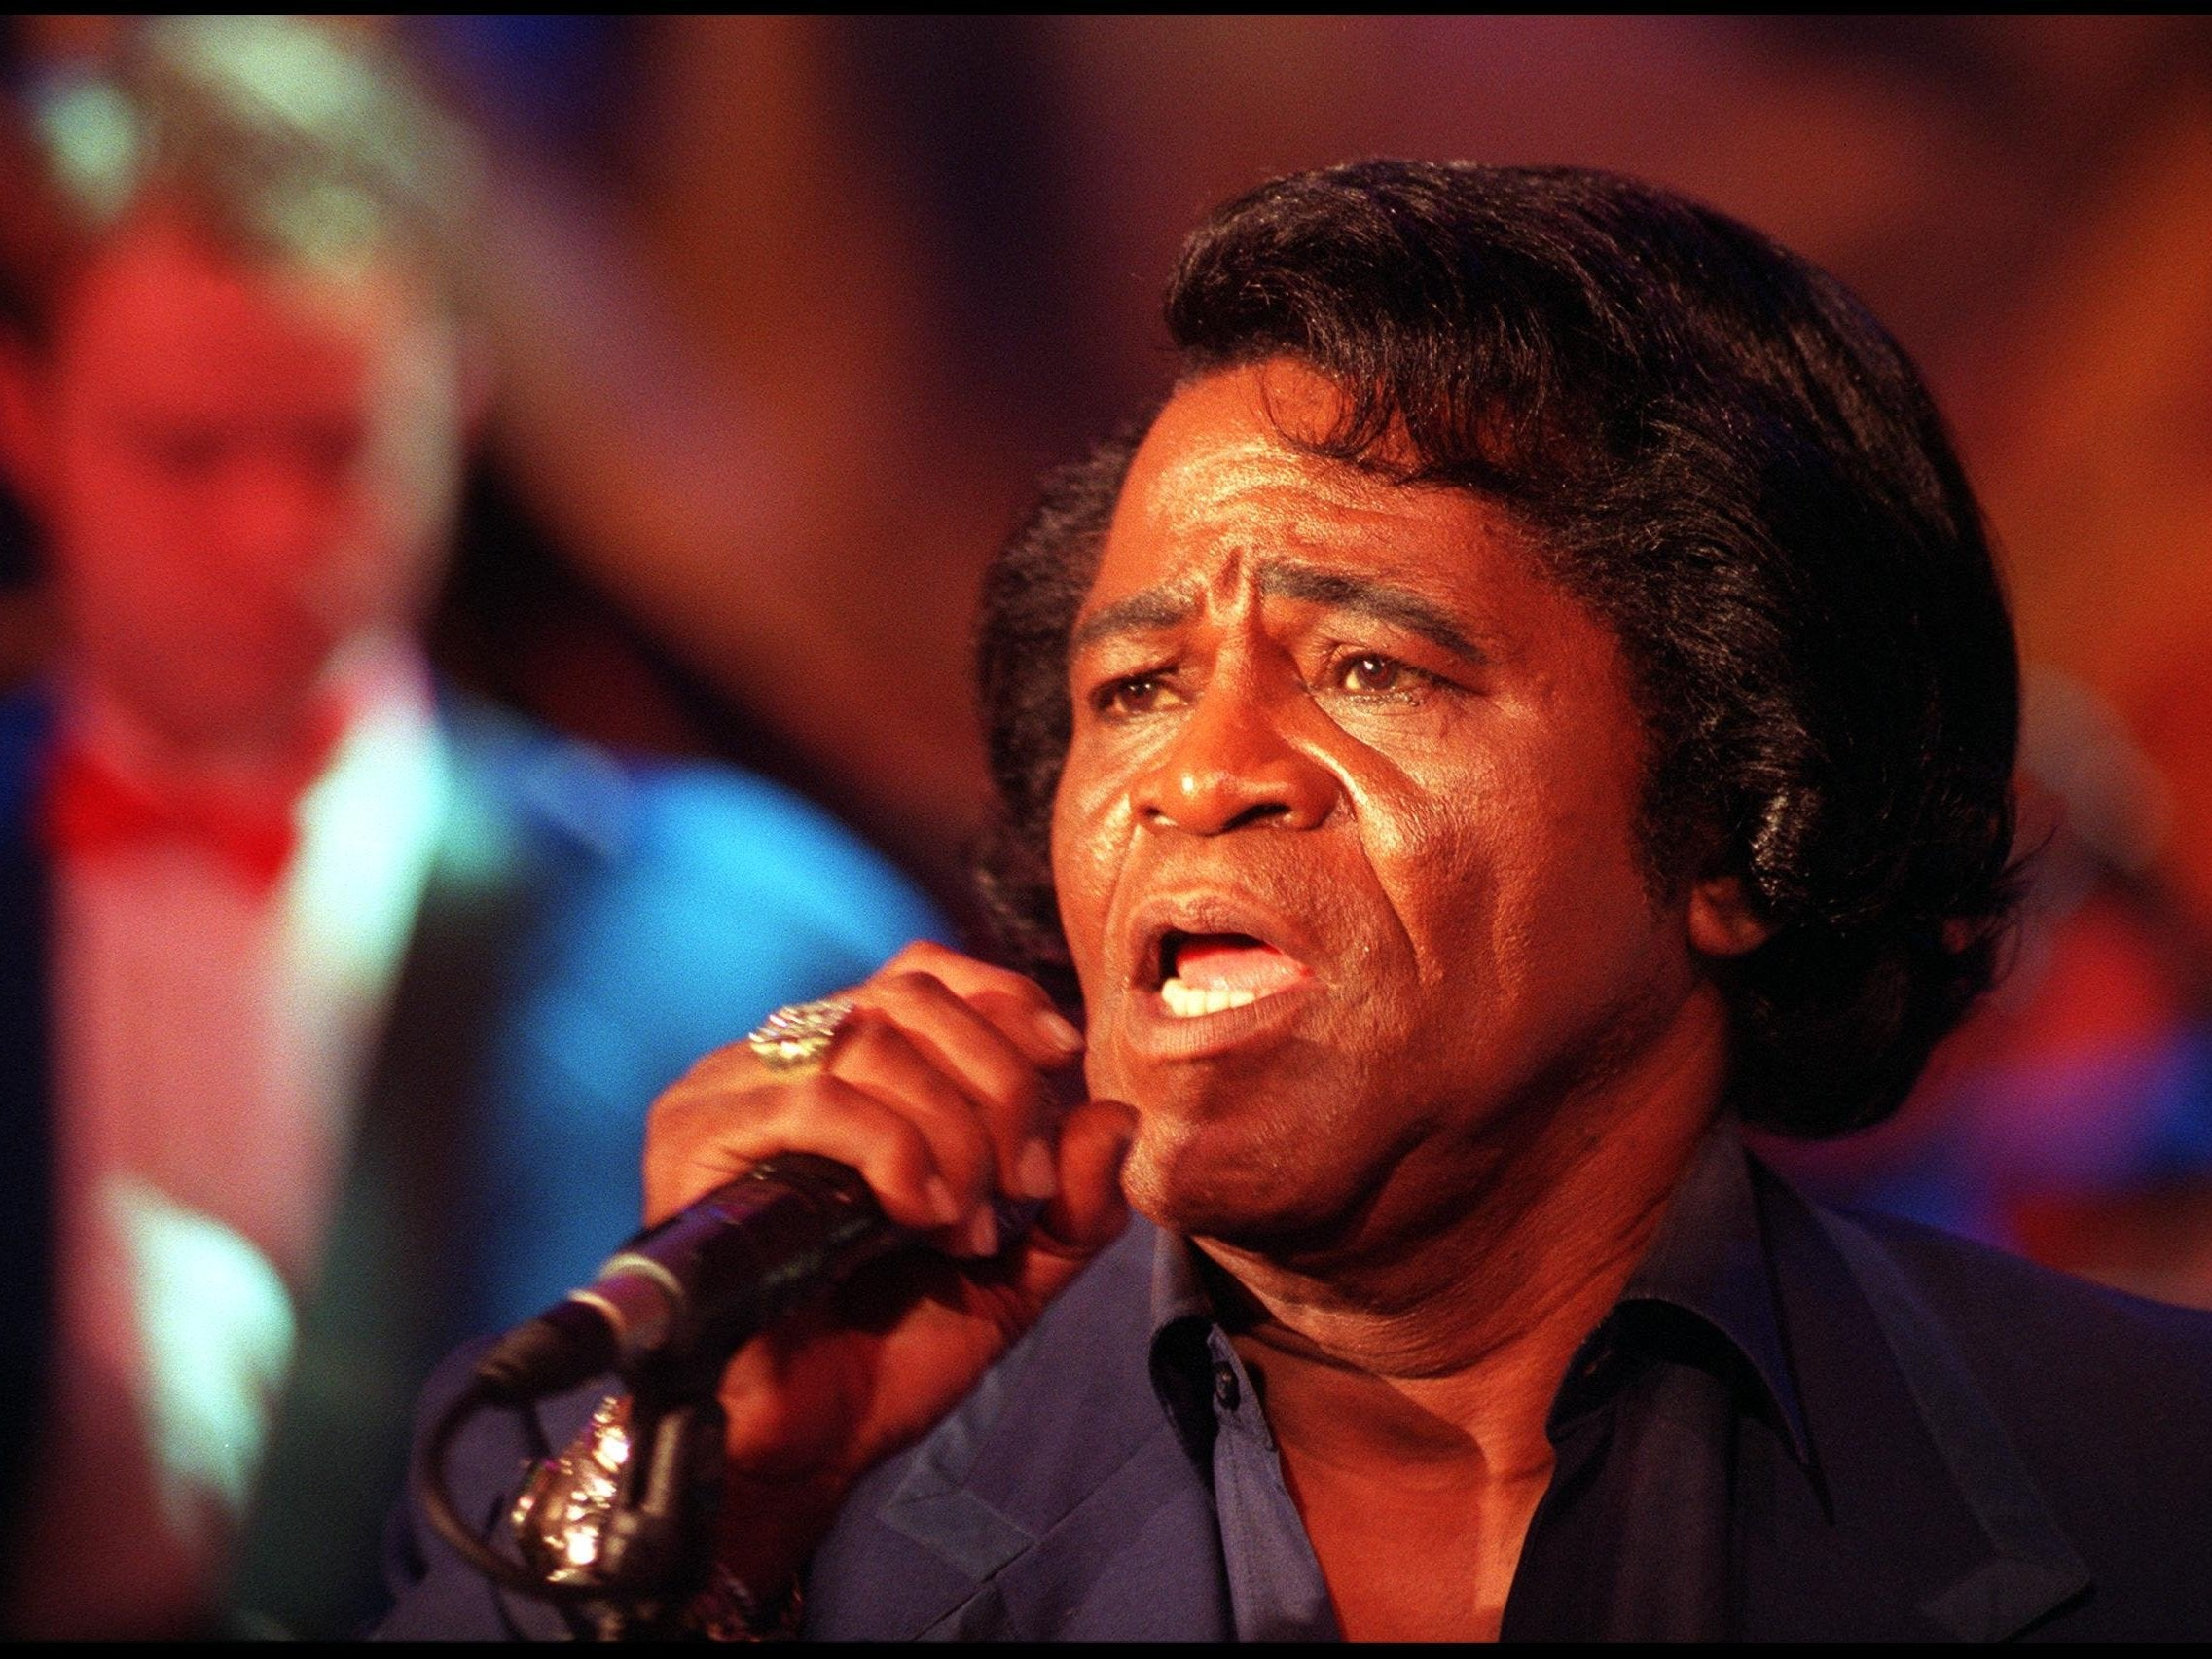 James Brown was murdered in 2006, new report claims